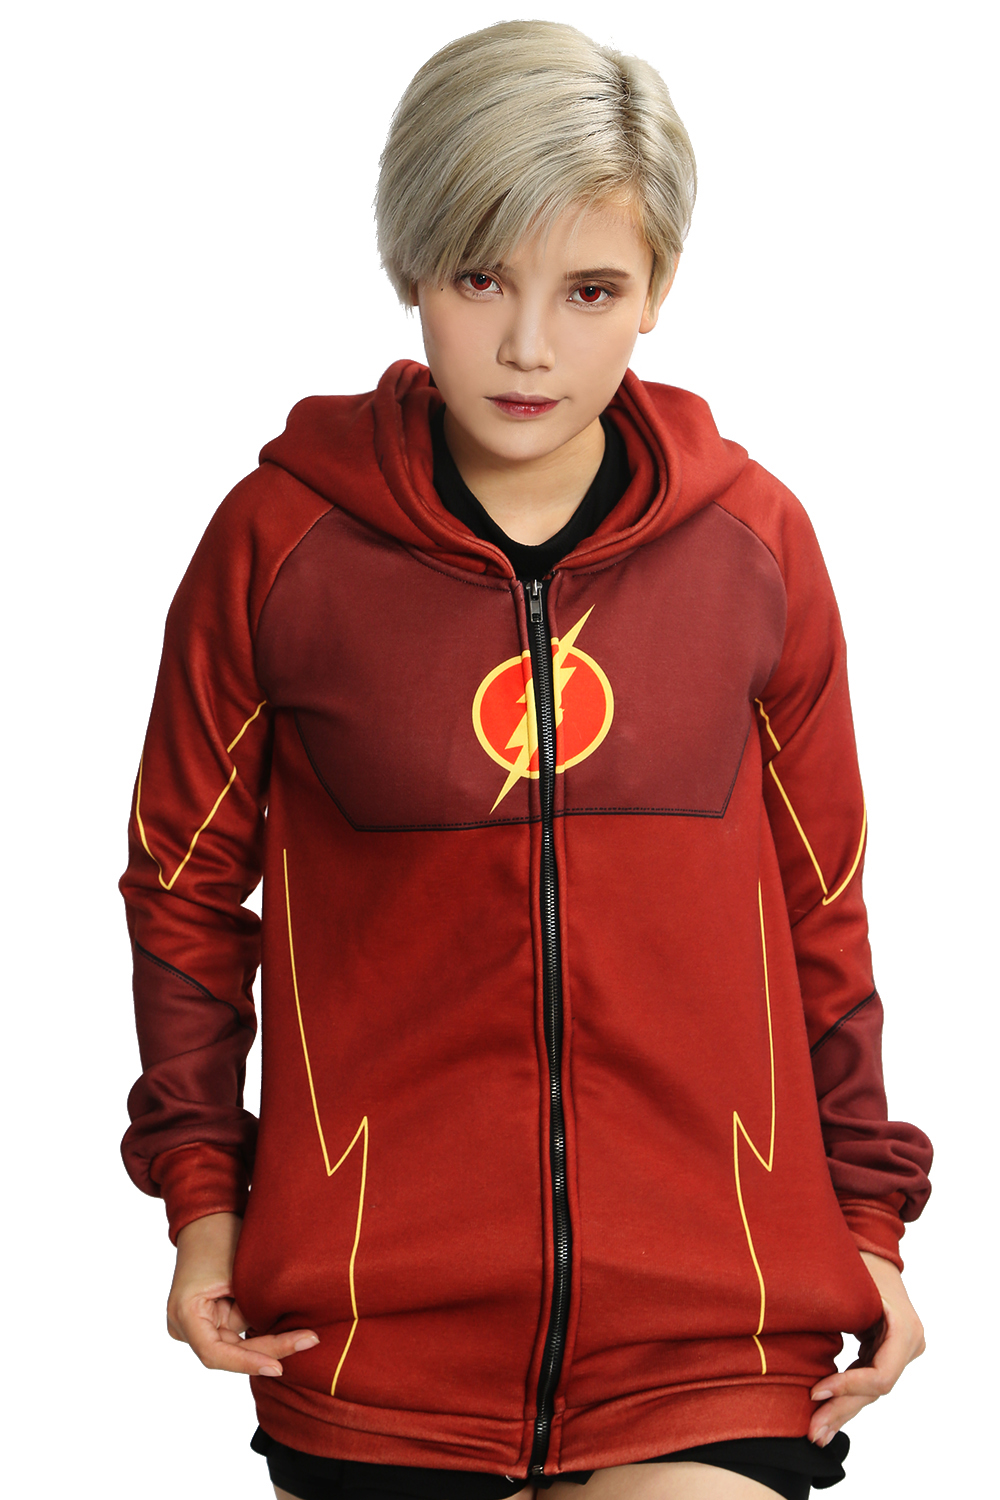 Xcoser The Flash Hoodie The Flash season 2 Cosplay Costume Suit Barry Allen Classic Red Zip Up Hoodie Daily Coat